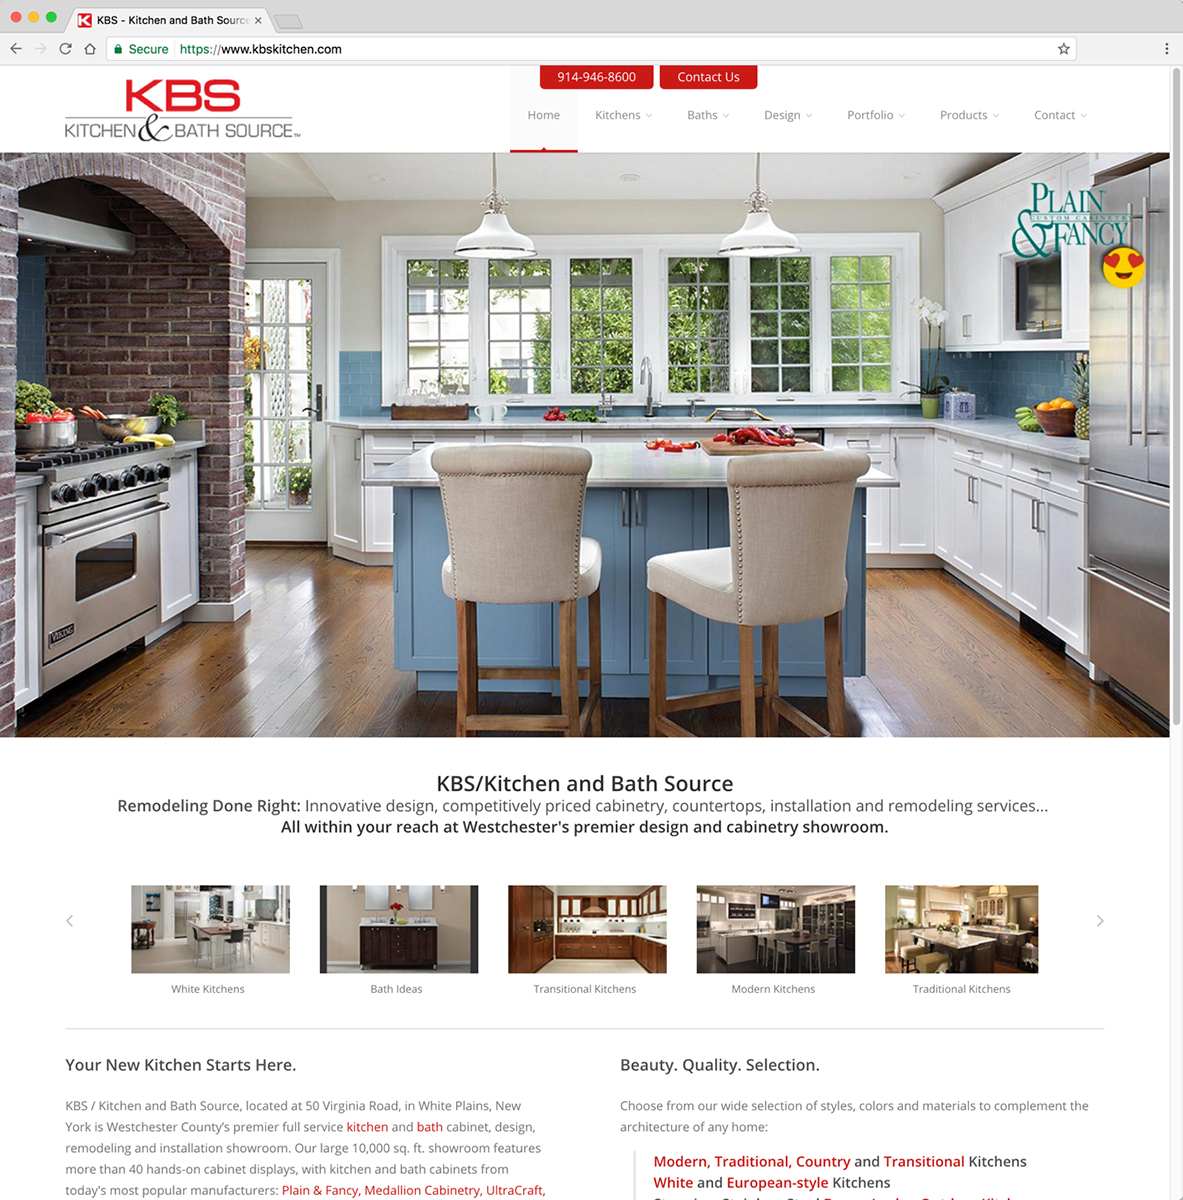 KBS/Kitchen and Bath Source Website - Home Page